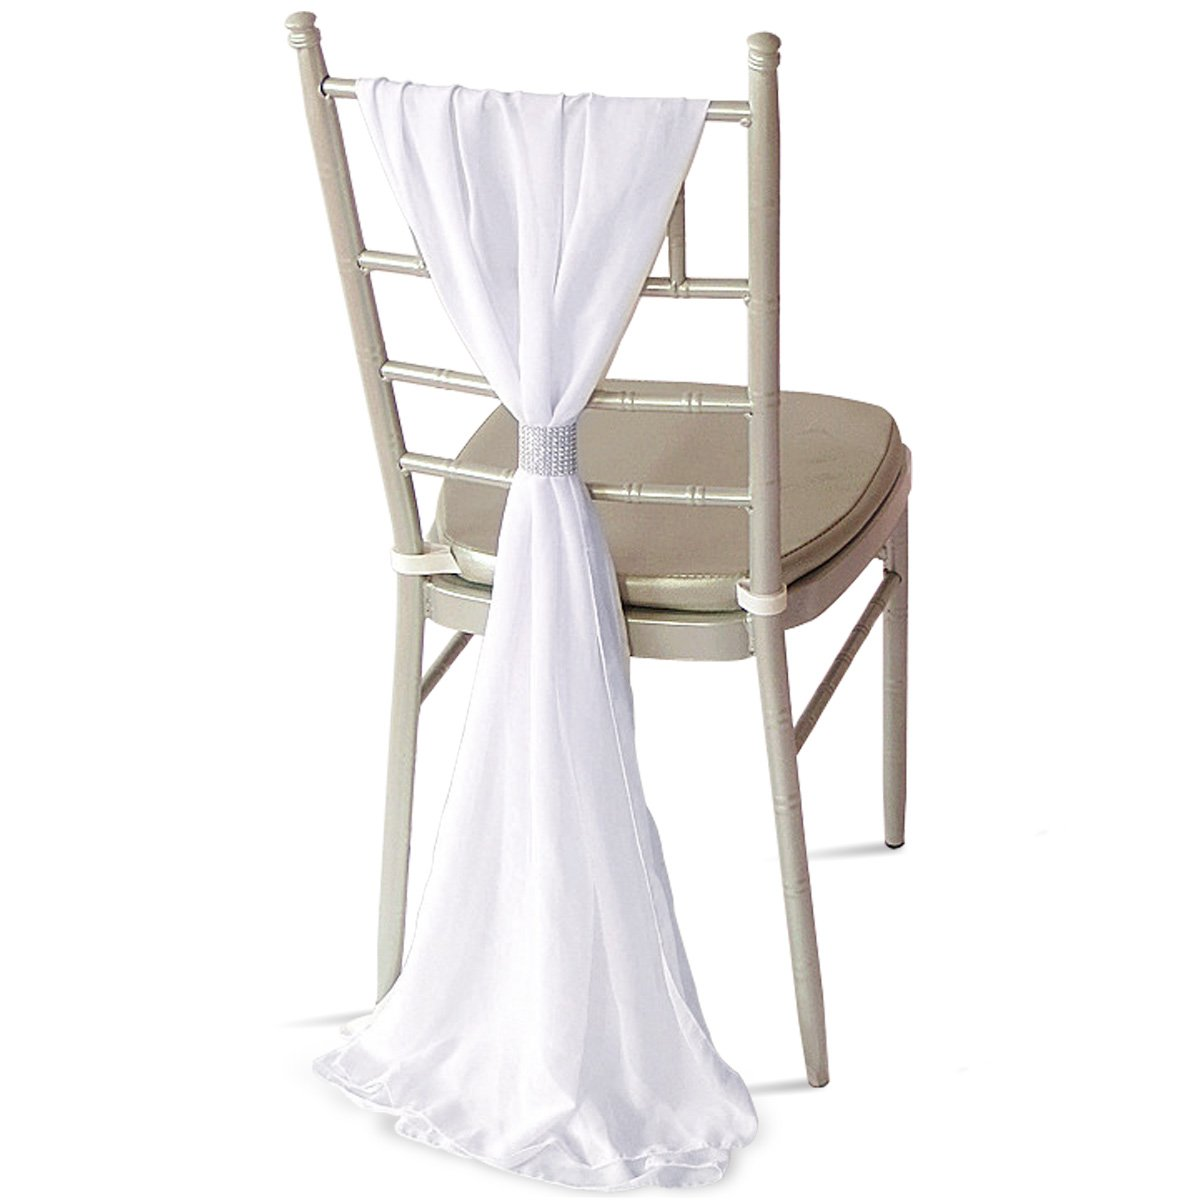 10x CHIFFON VERTICAL DROPS 70CMx2M 2 COLOURS DECOR CHAIR COVER WEDDING DECOR (Ivory) Anladia